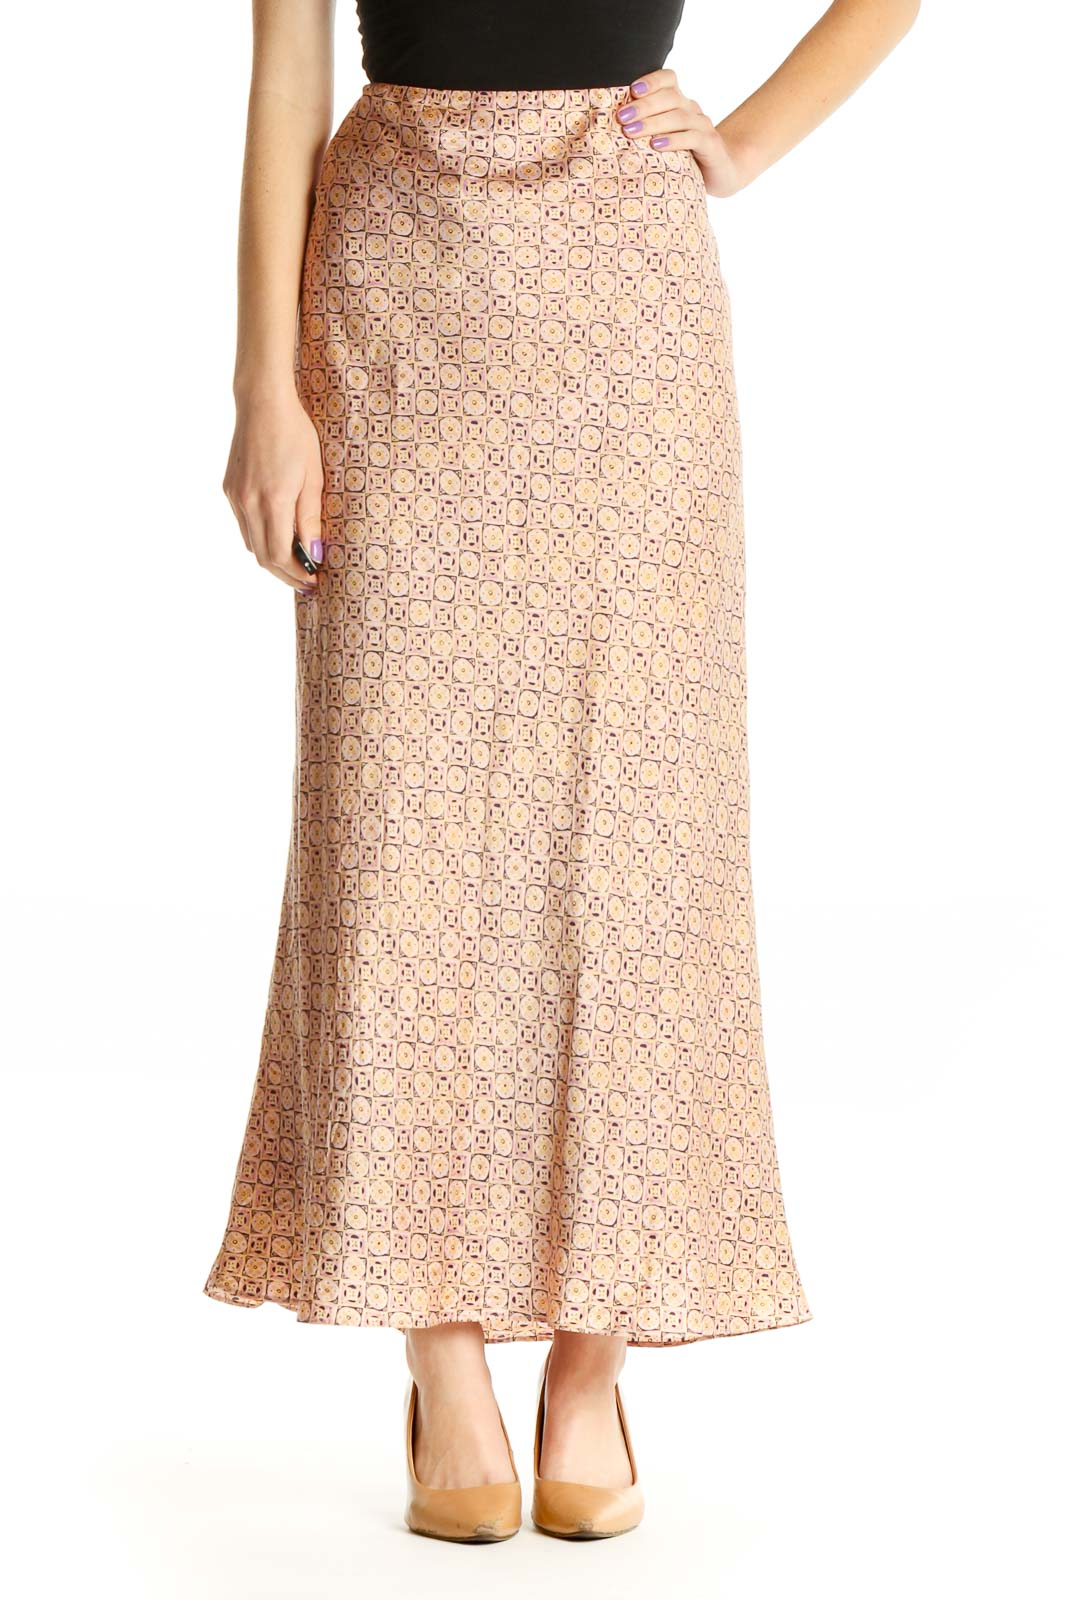 Pink Printed Bohemian A-Line Skirt Front